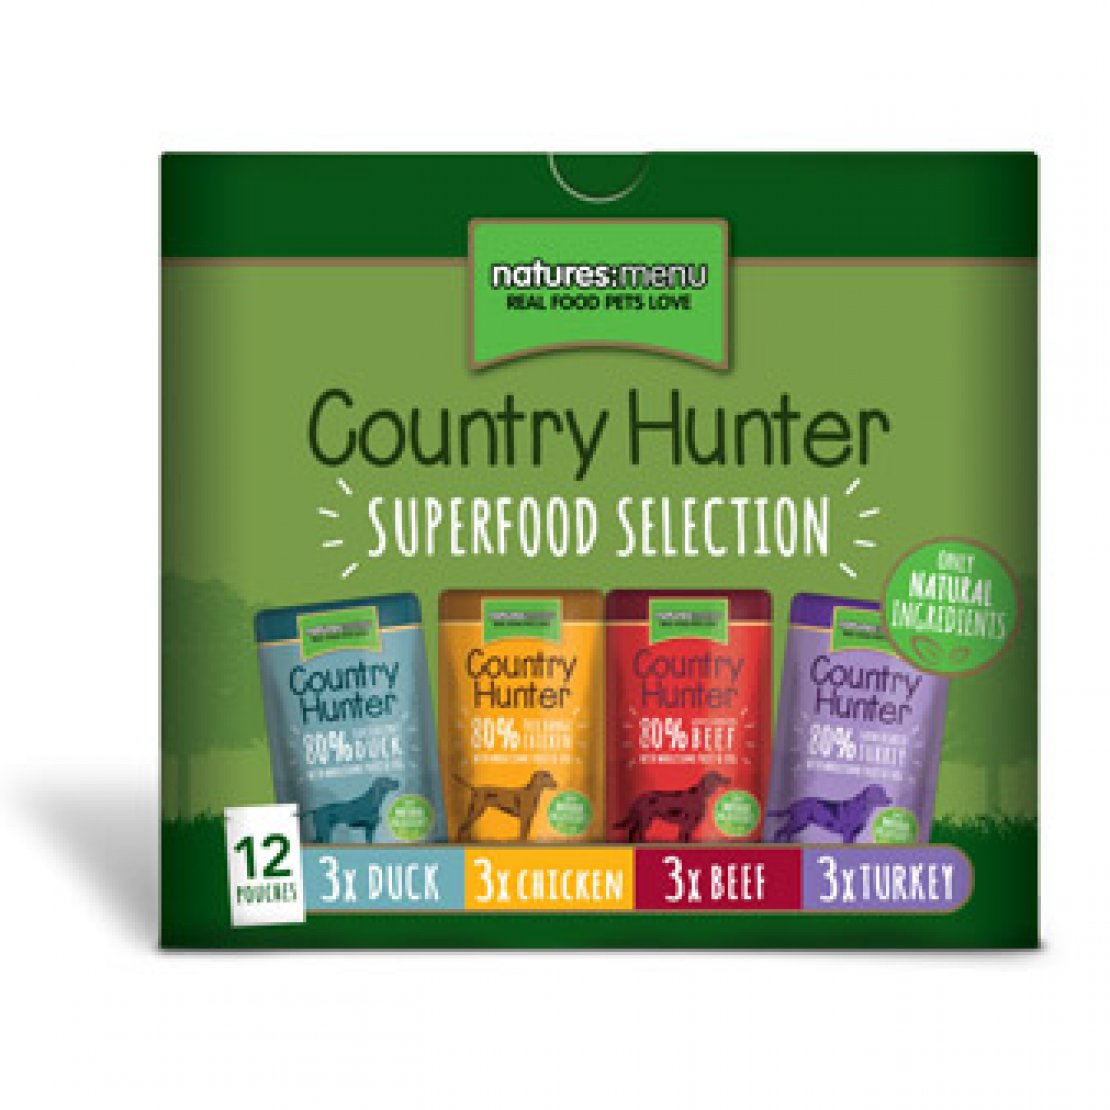 ONLY AVAILABLE FOR LOCAL DELIVERY. Country Hunter Dog Food Pouch. Mixed Box. 12Pk